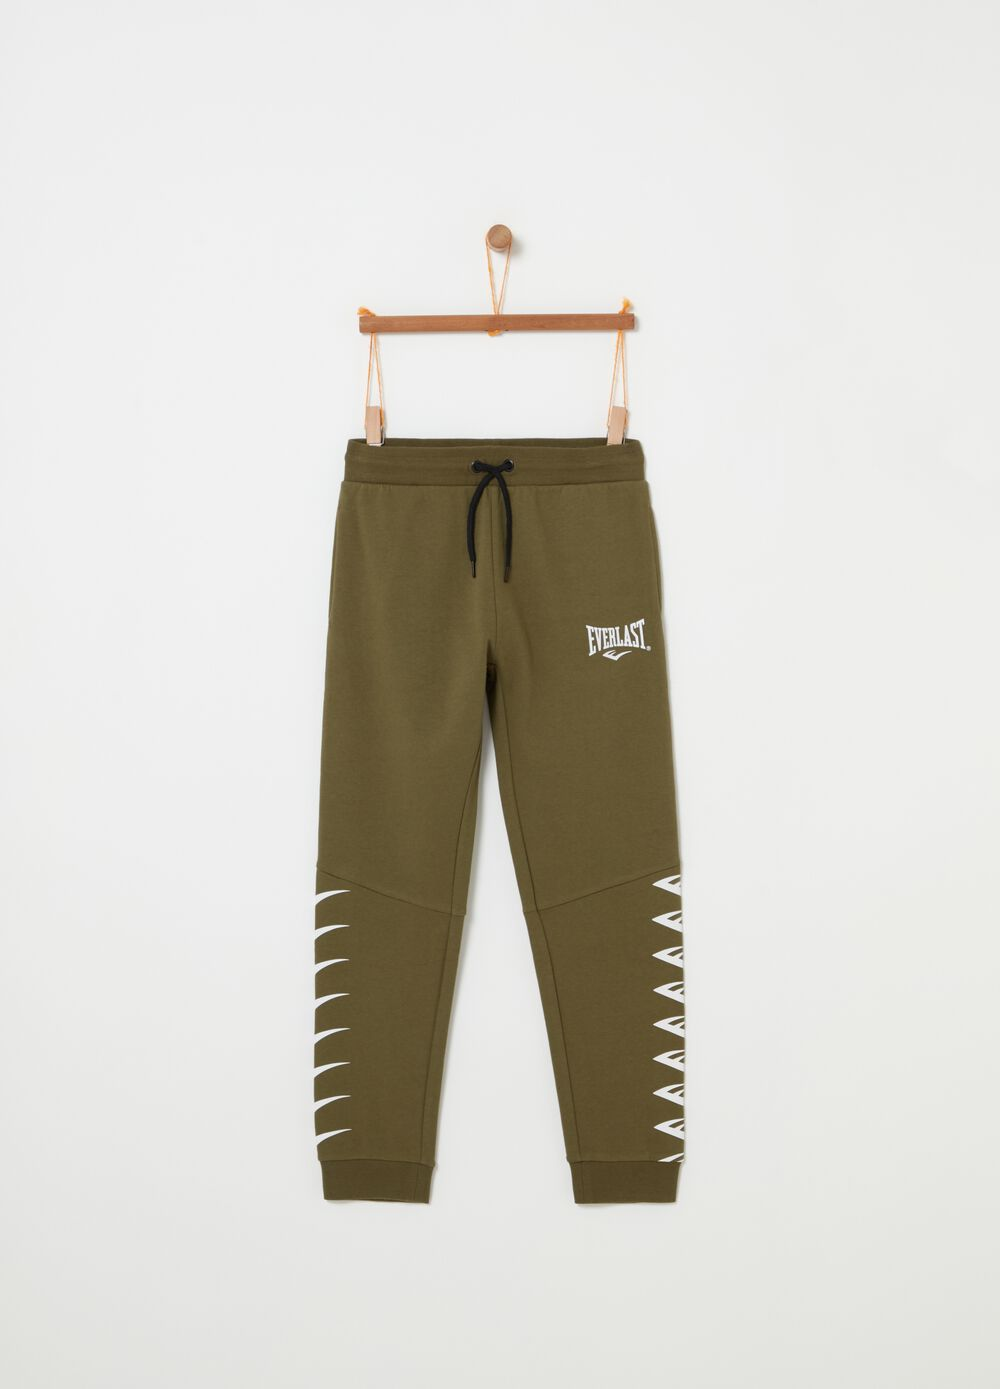 Fleece trousers with Everlast print